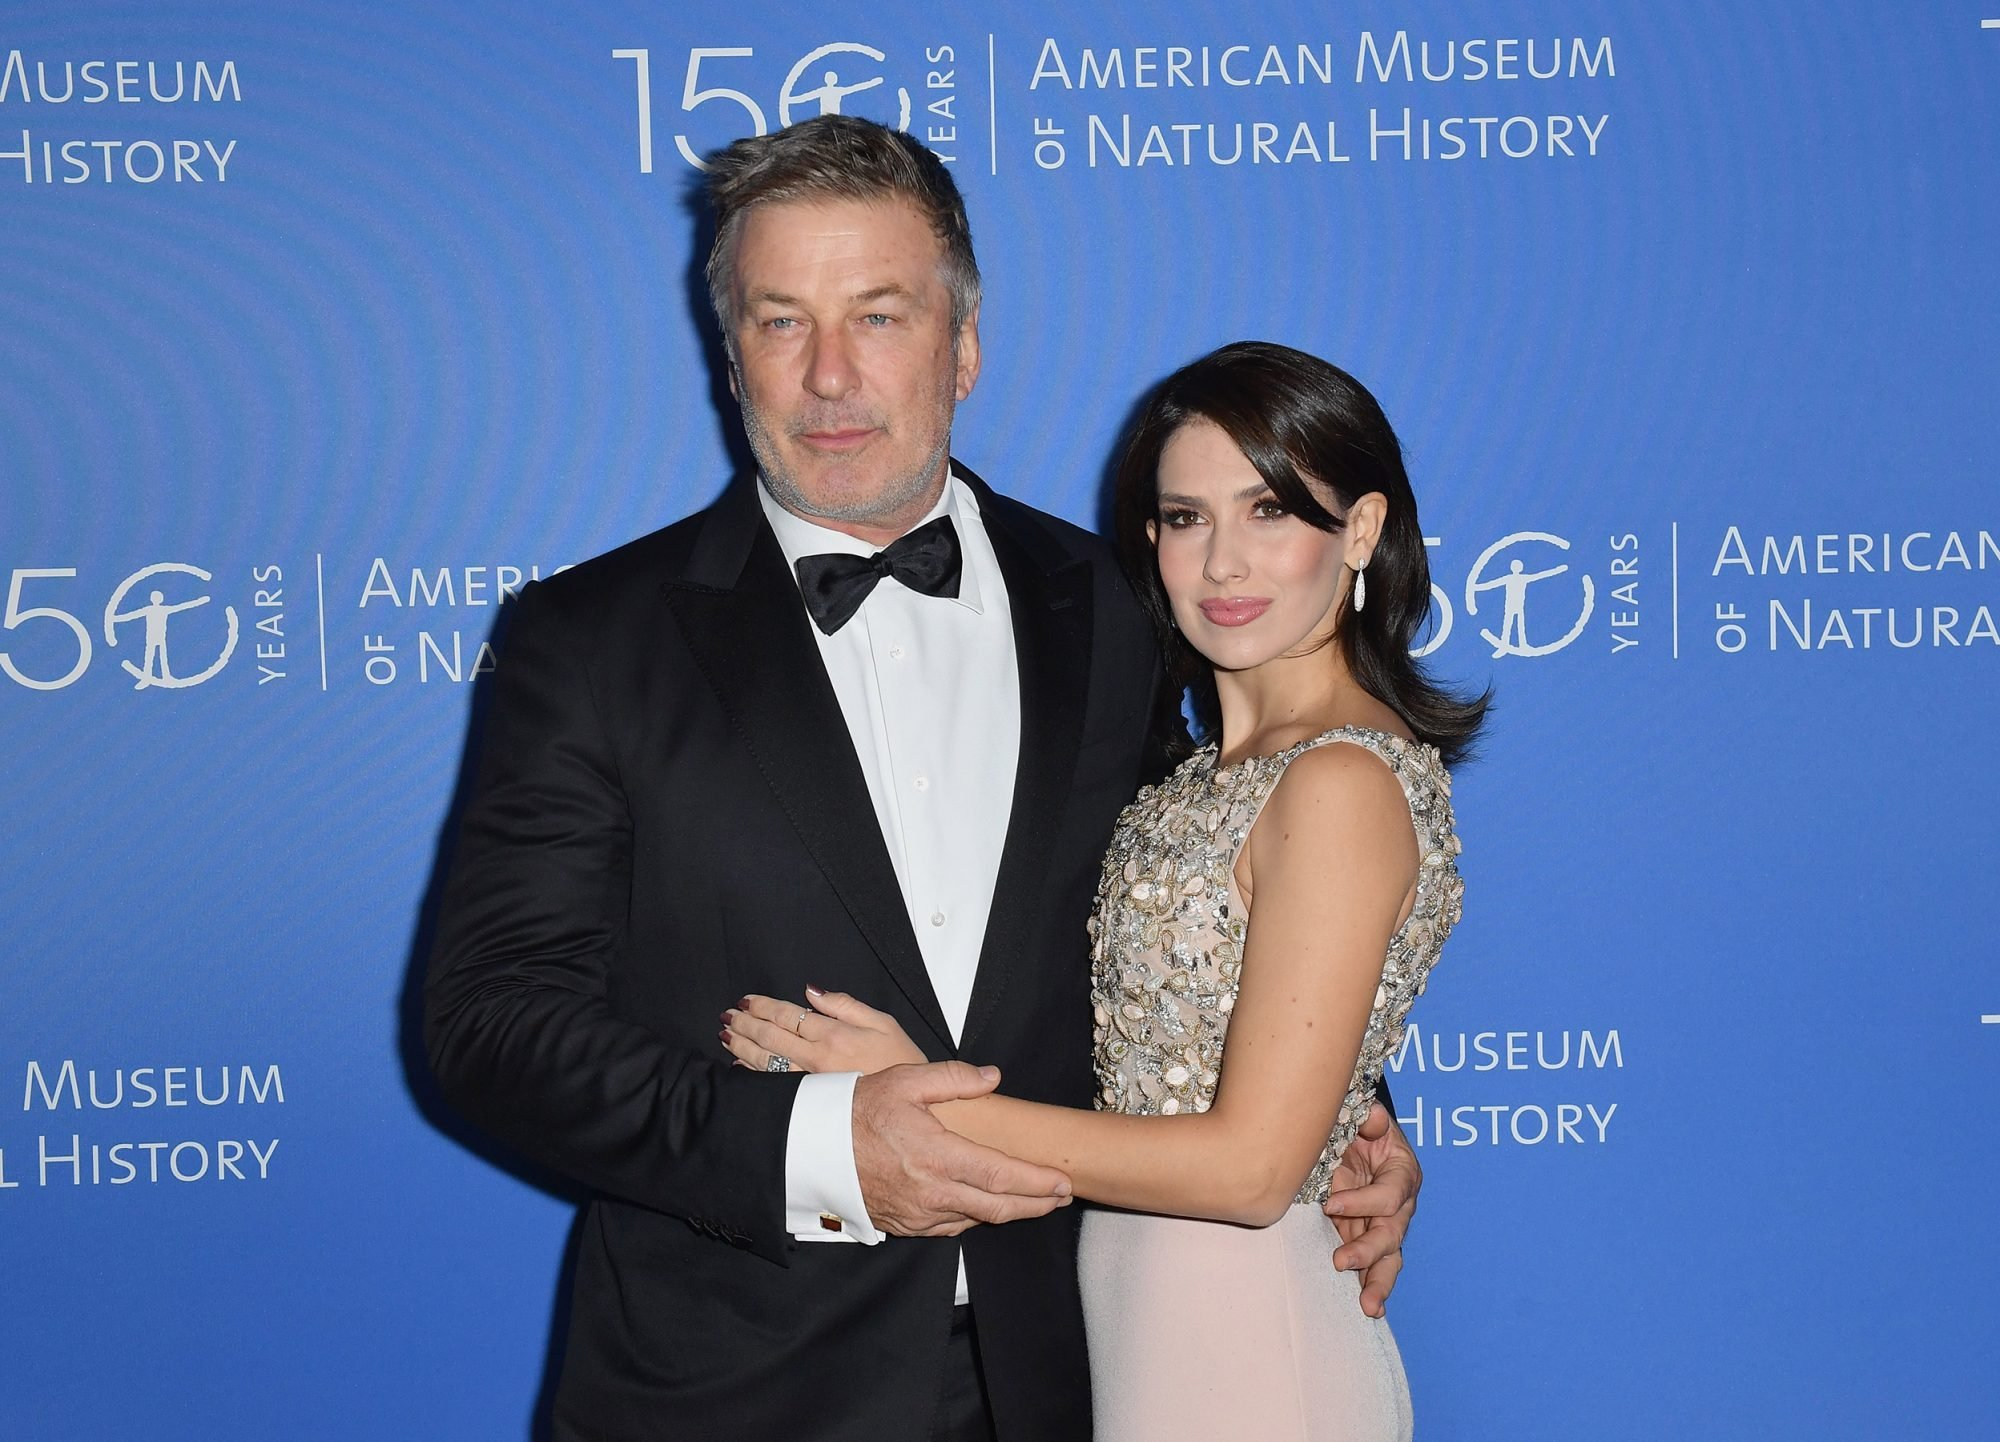 Hilaria Baldwin Attempts To Clear Up Her Decade-Long Claim That She Is From Spain When She Is Really From Boston